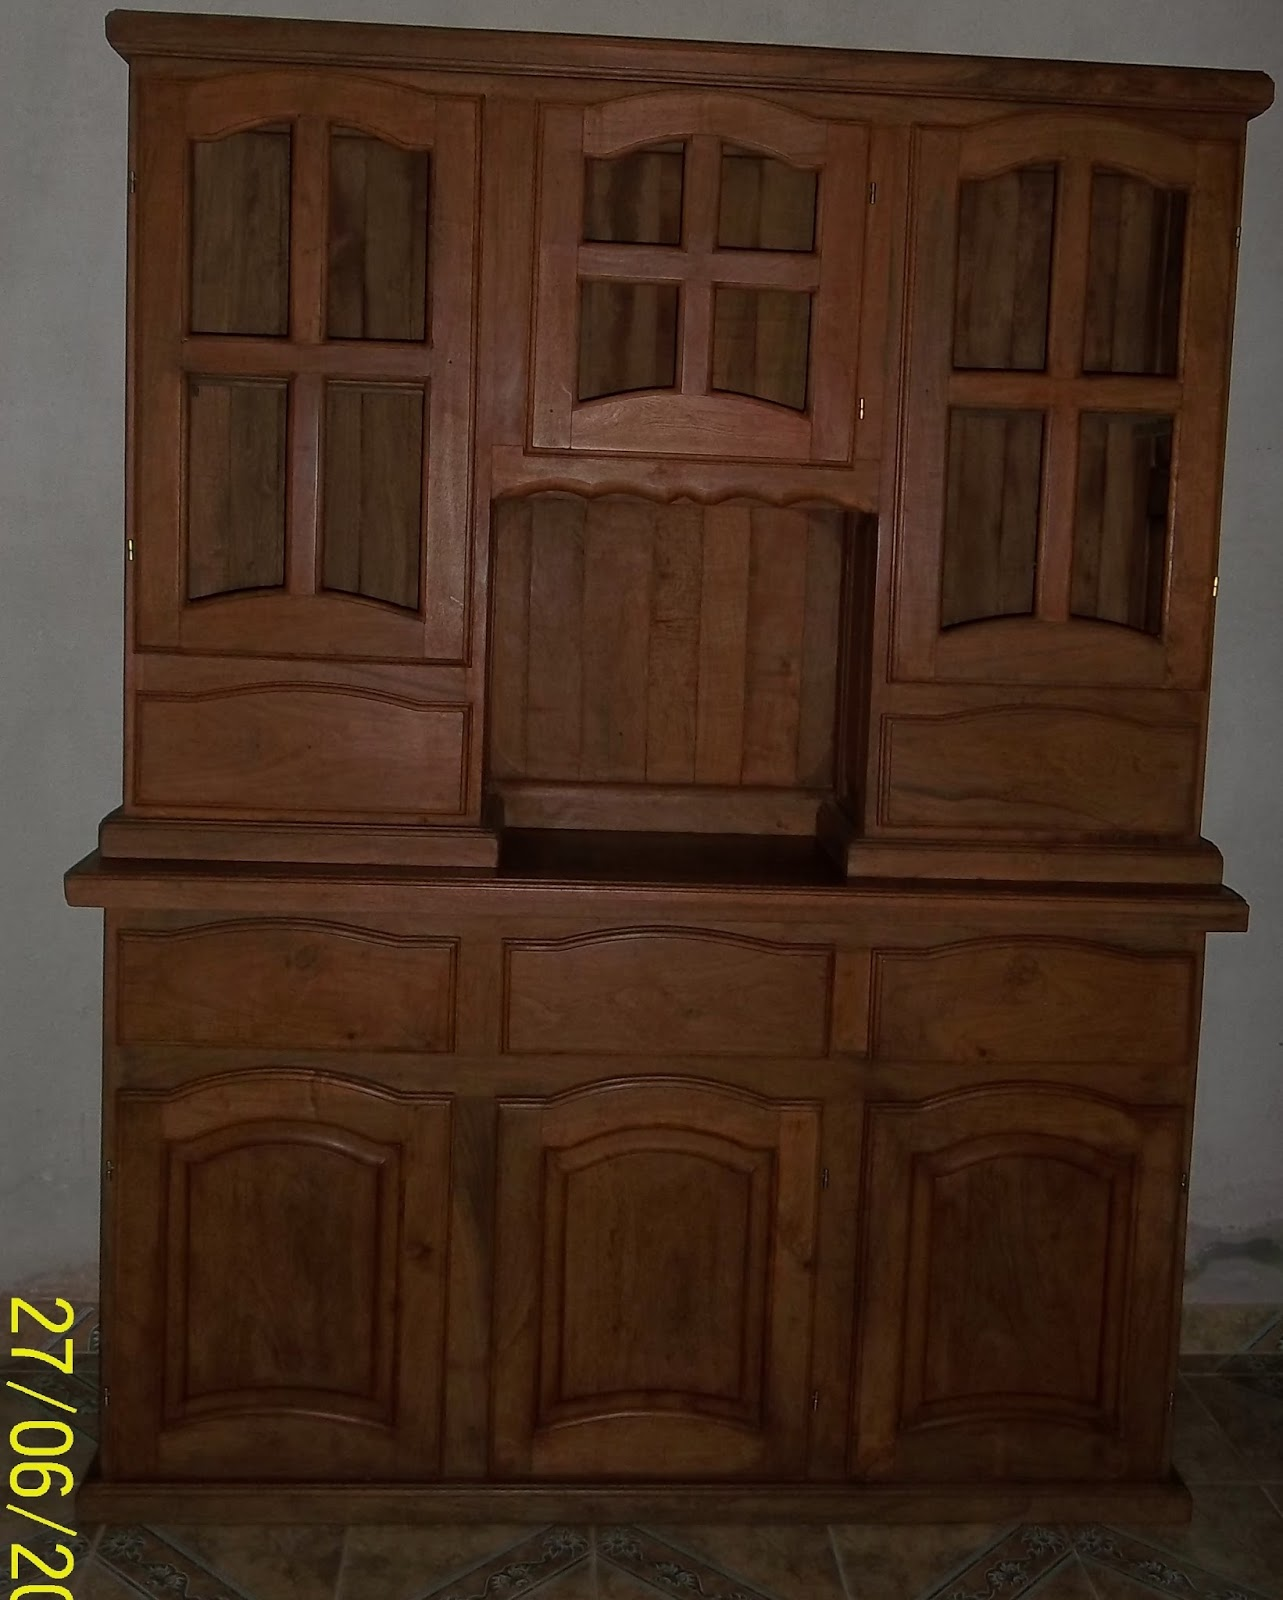 Fabrica De Muebles De Guatambu Paraiso Roble Cerejeira  Share The